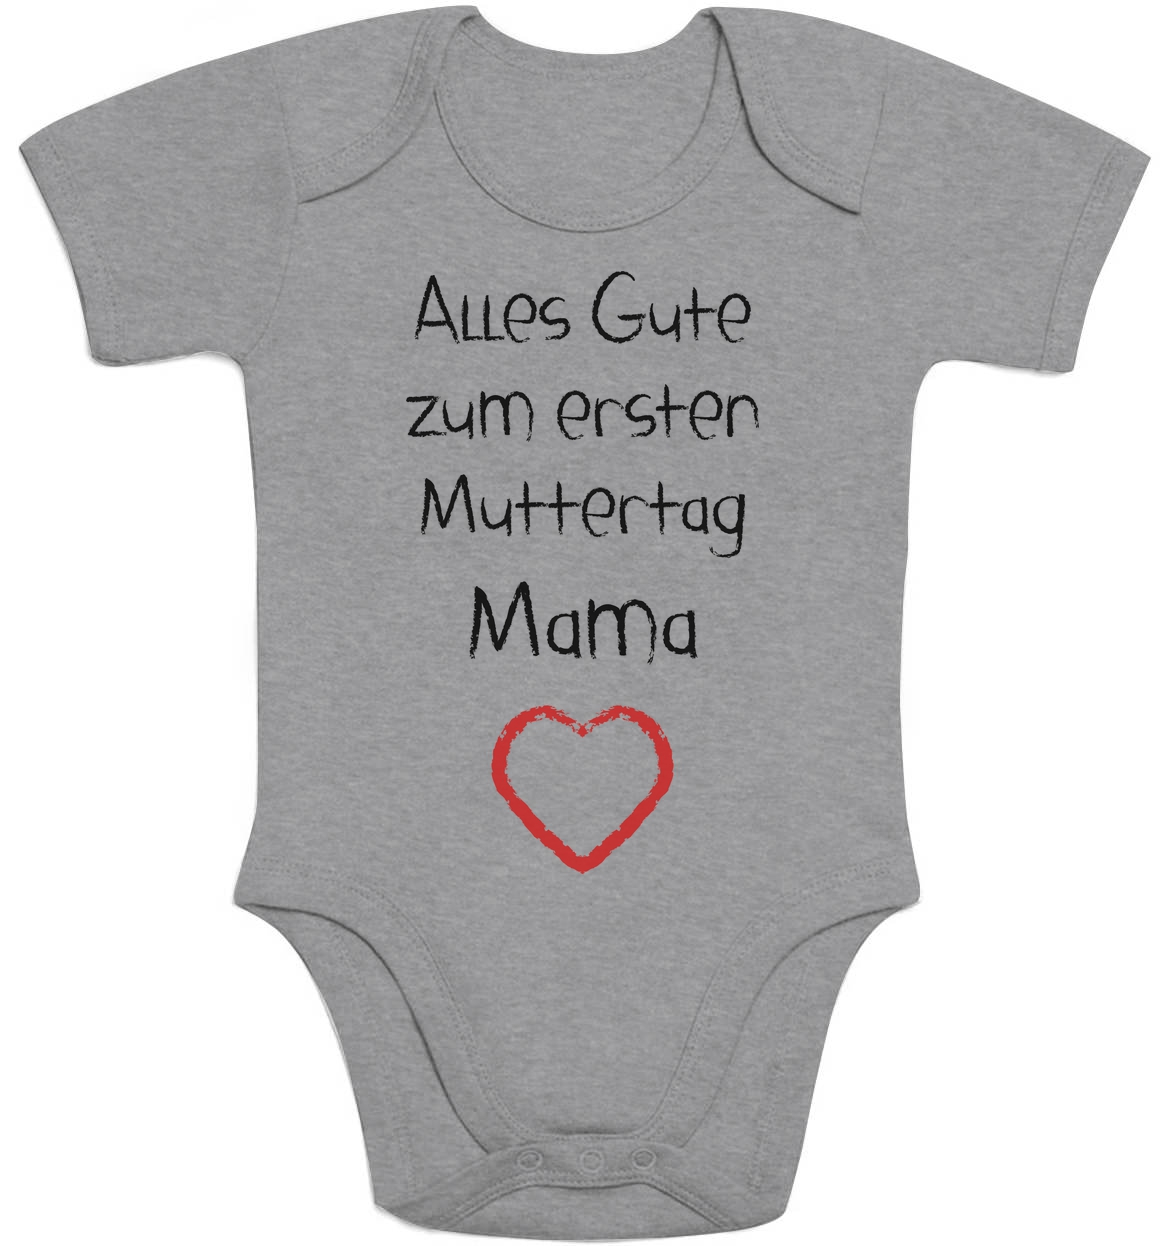 alles gute zum ersten muttertag mama geschenk baby mutter mutti baby body herz ebay. Black Bedroom Furniture Sets. Home Design Ideas